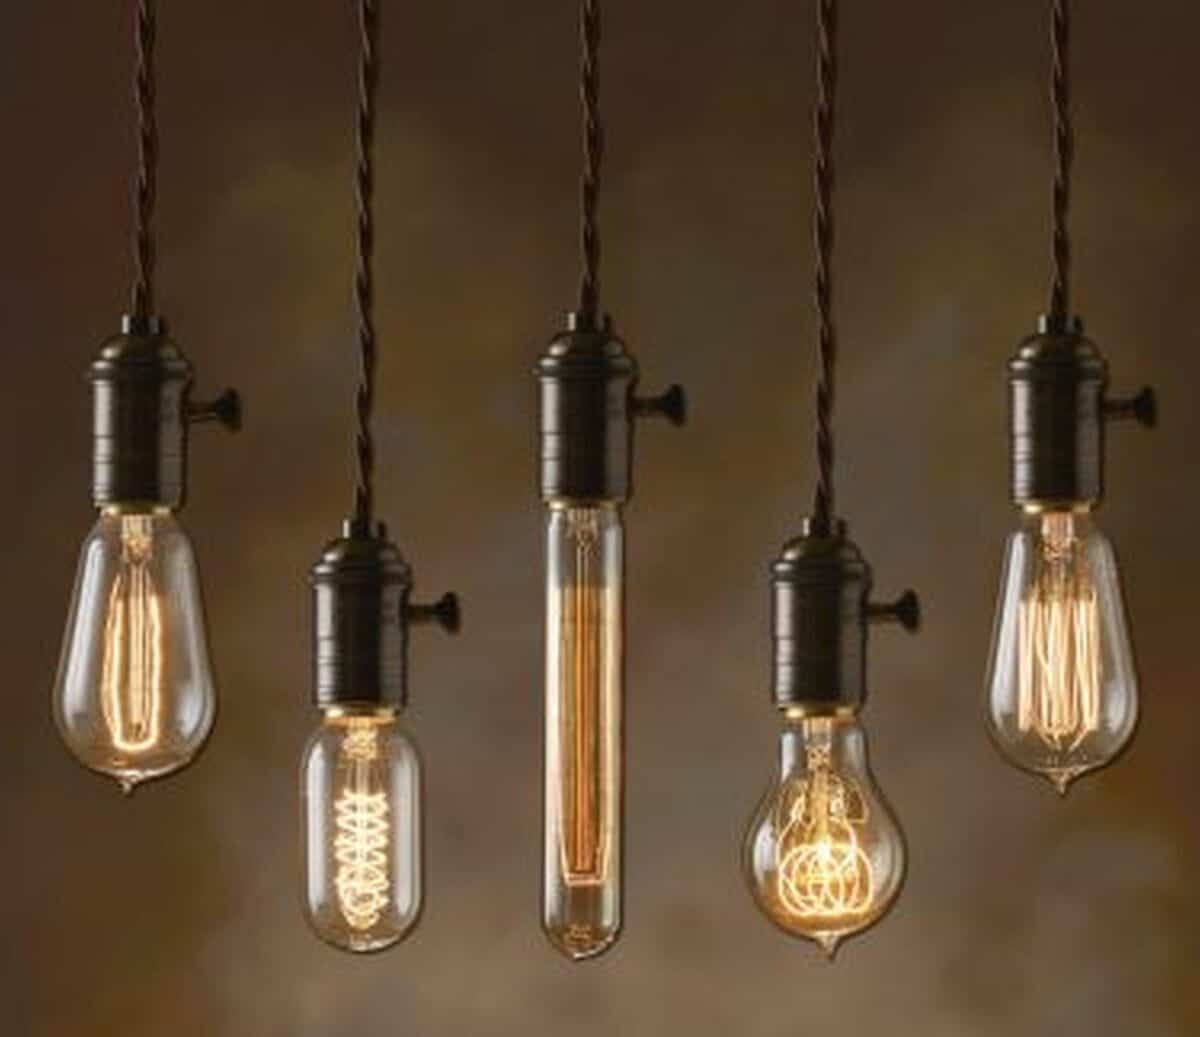 Outdated Decorating Trends: Edison Bulbs